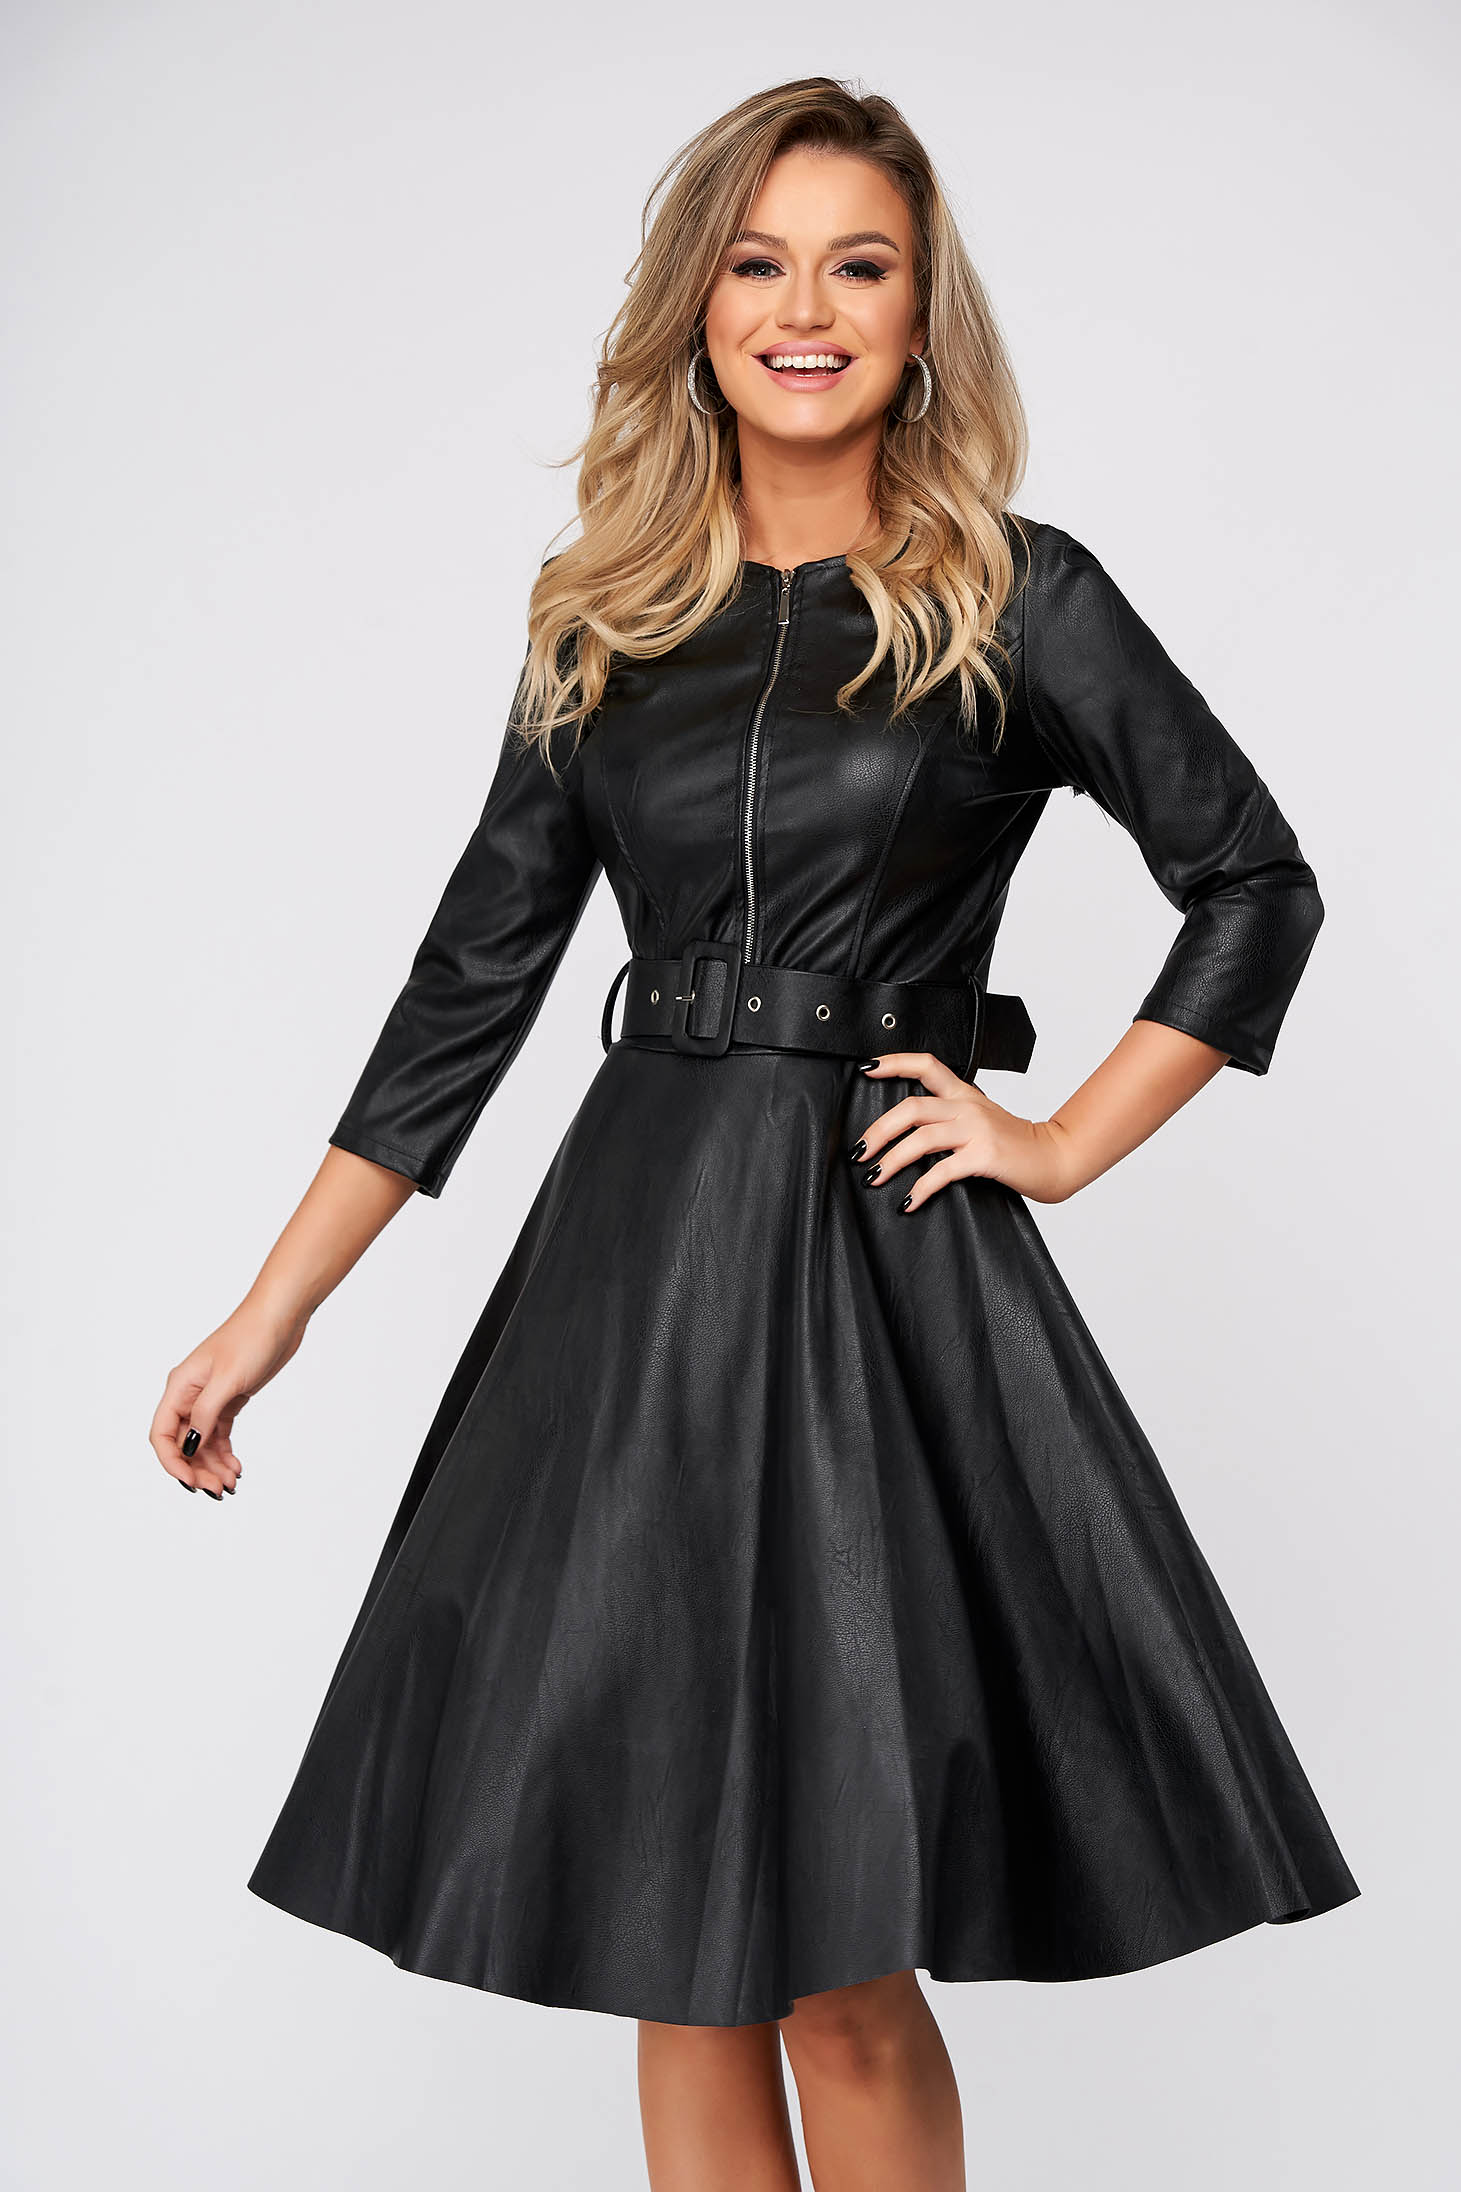 Black dress daily cloche from ecological leather with 3/4 sleeves midi